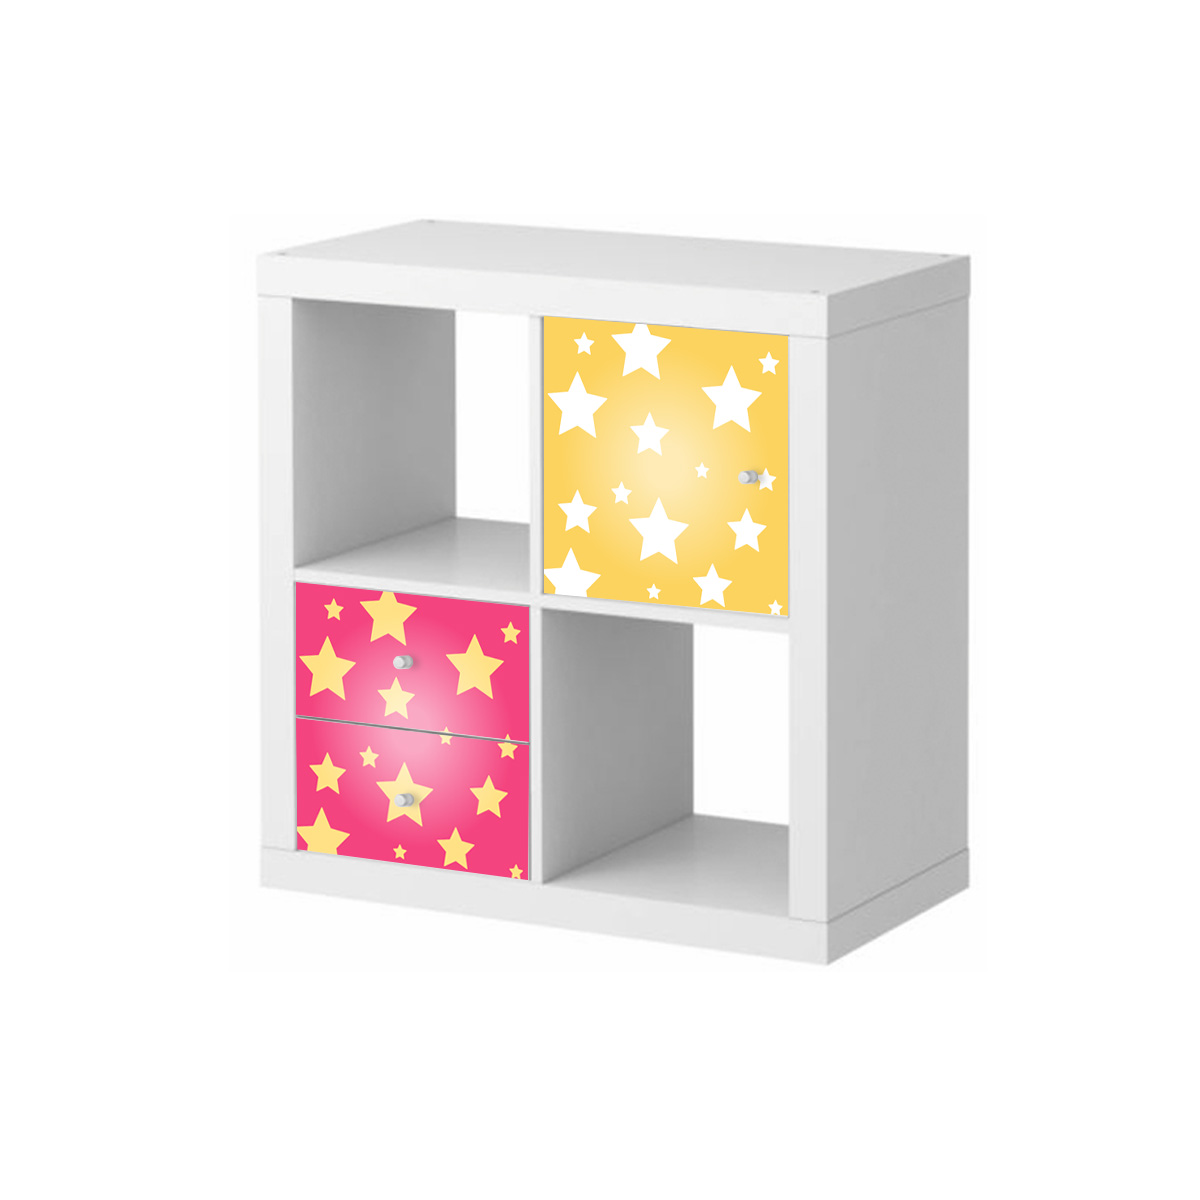 Stickers meubles ikea stickers meubles ikea toiles sur for Ikea stickers chambre